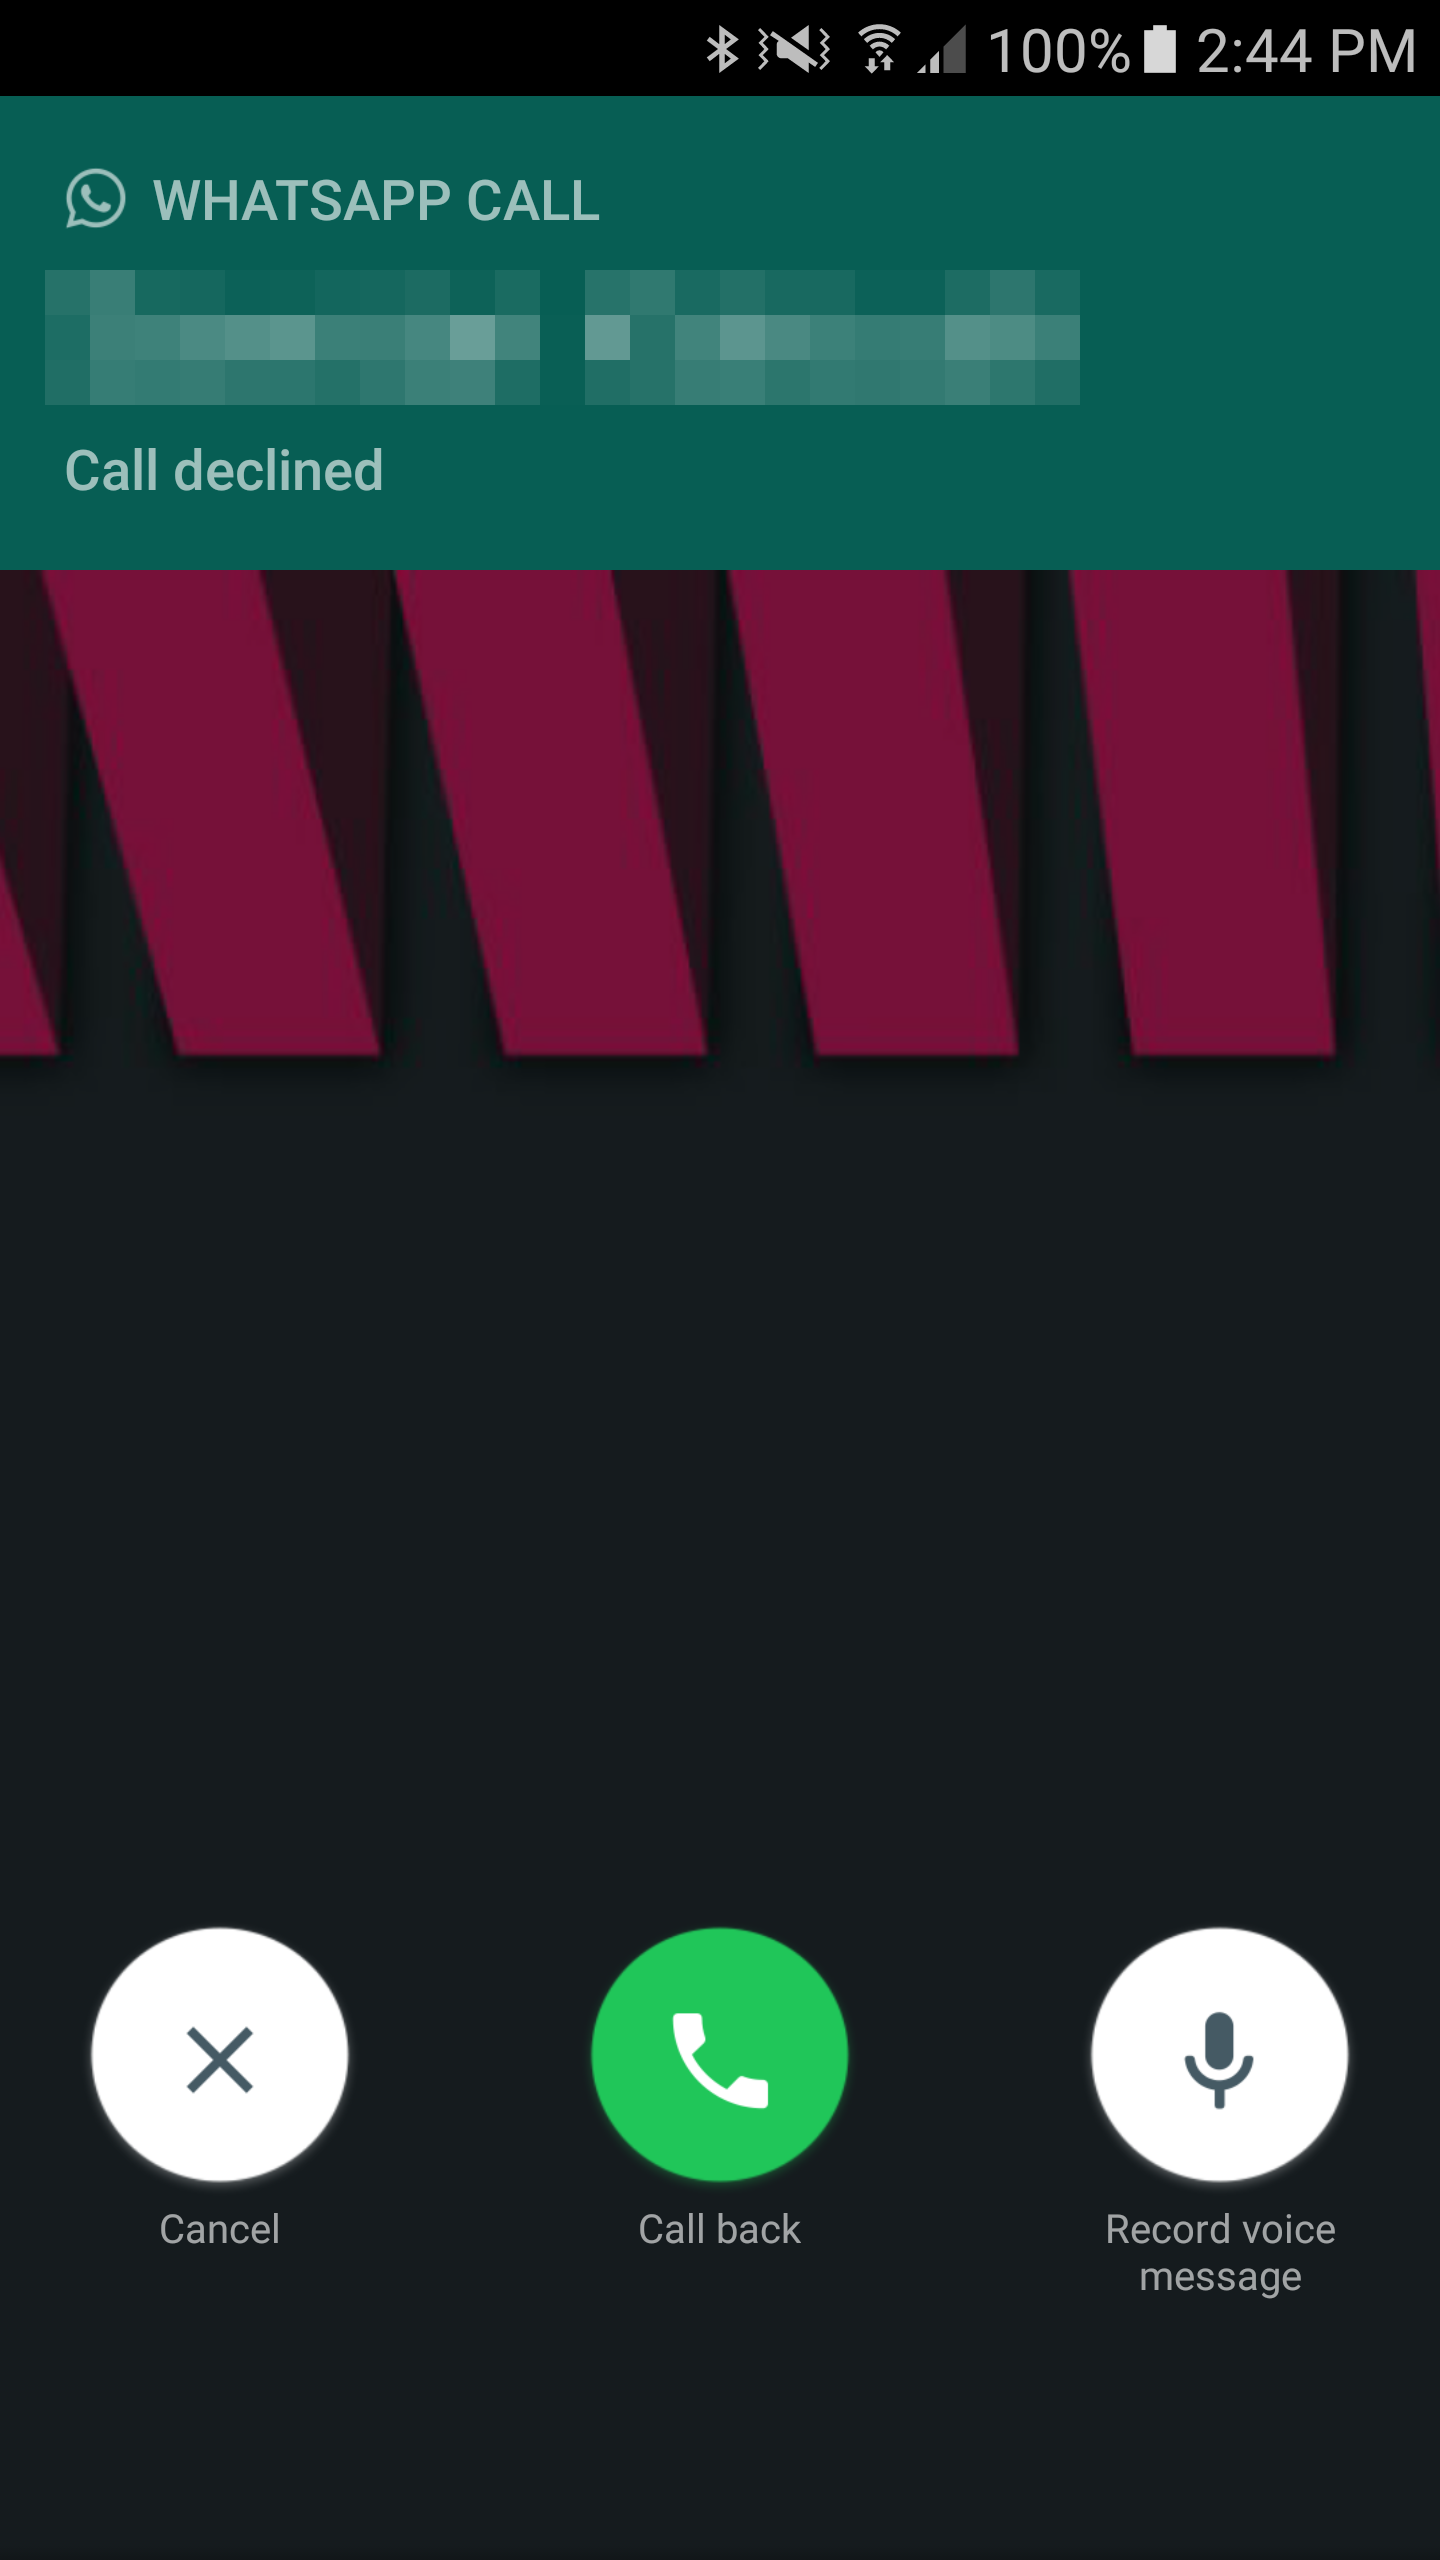 WhatsApp adds Voicemail and Call Back options, new Fixedsys font